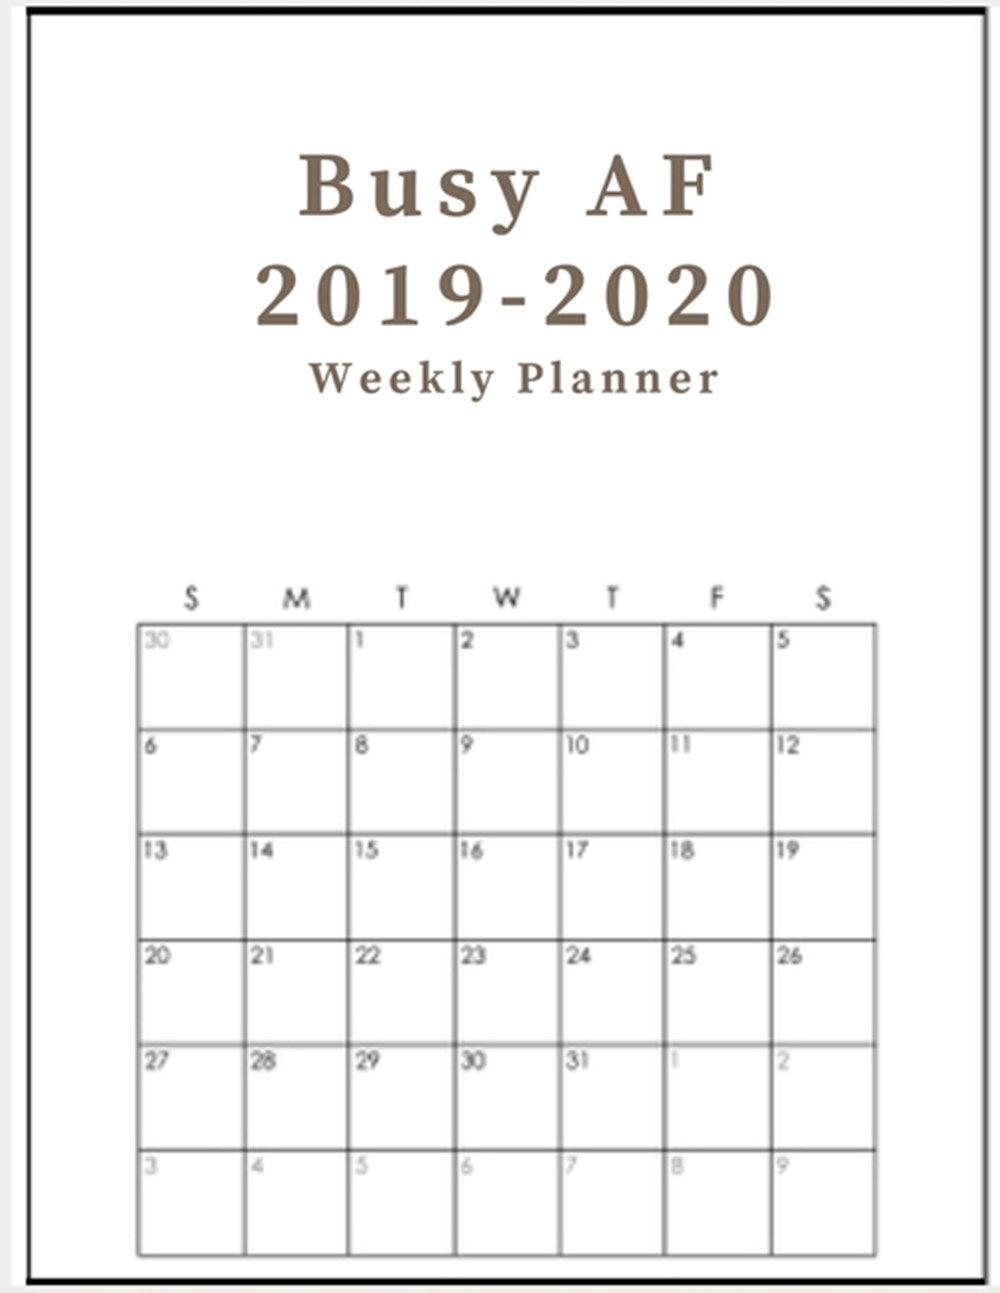 Busy AF 2019-2020 weekly planner Organizer & Diary for your 2020 activities